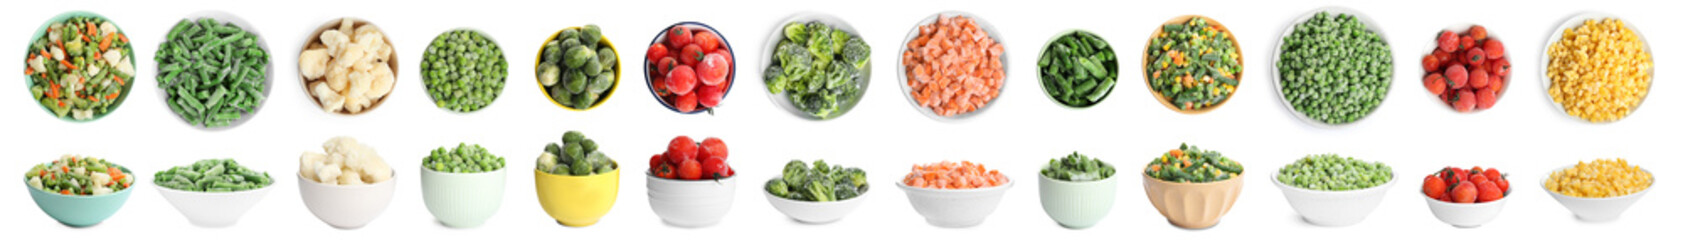 Photo sur Toile Légumes frais Set of different frozen vegetables on white background. Banner design